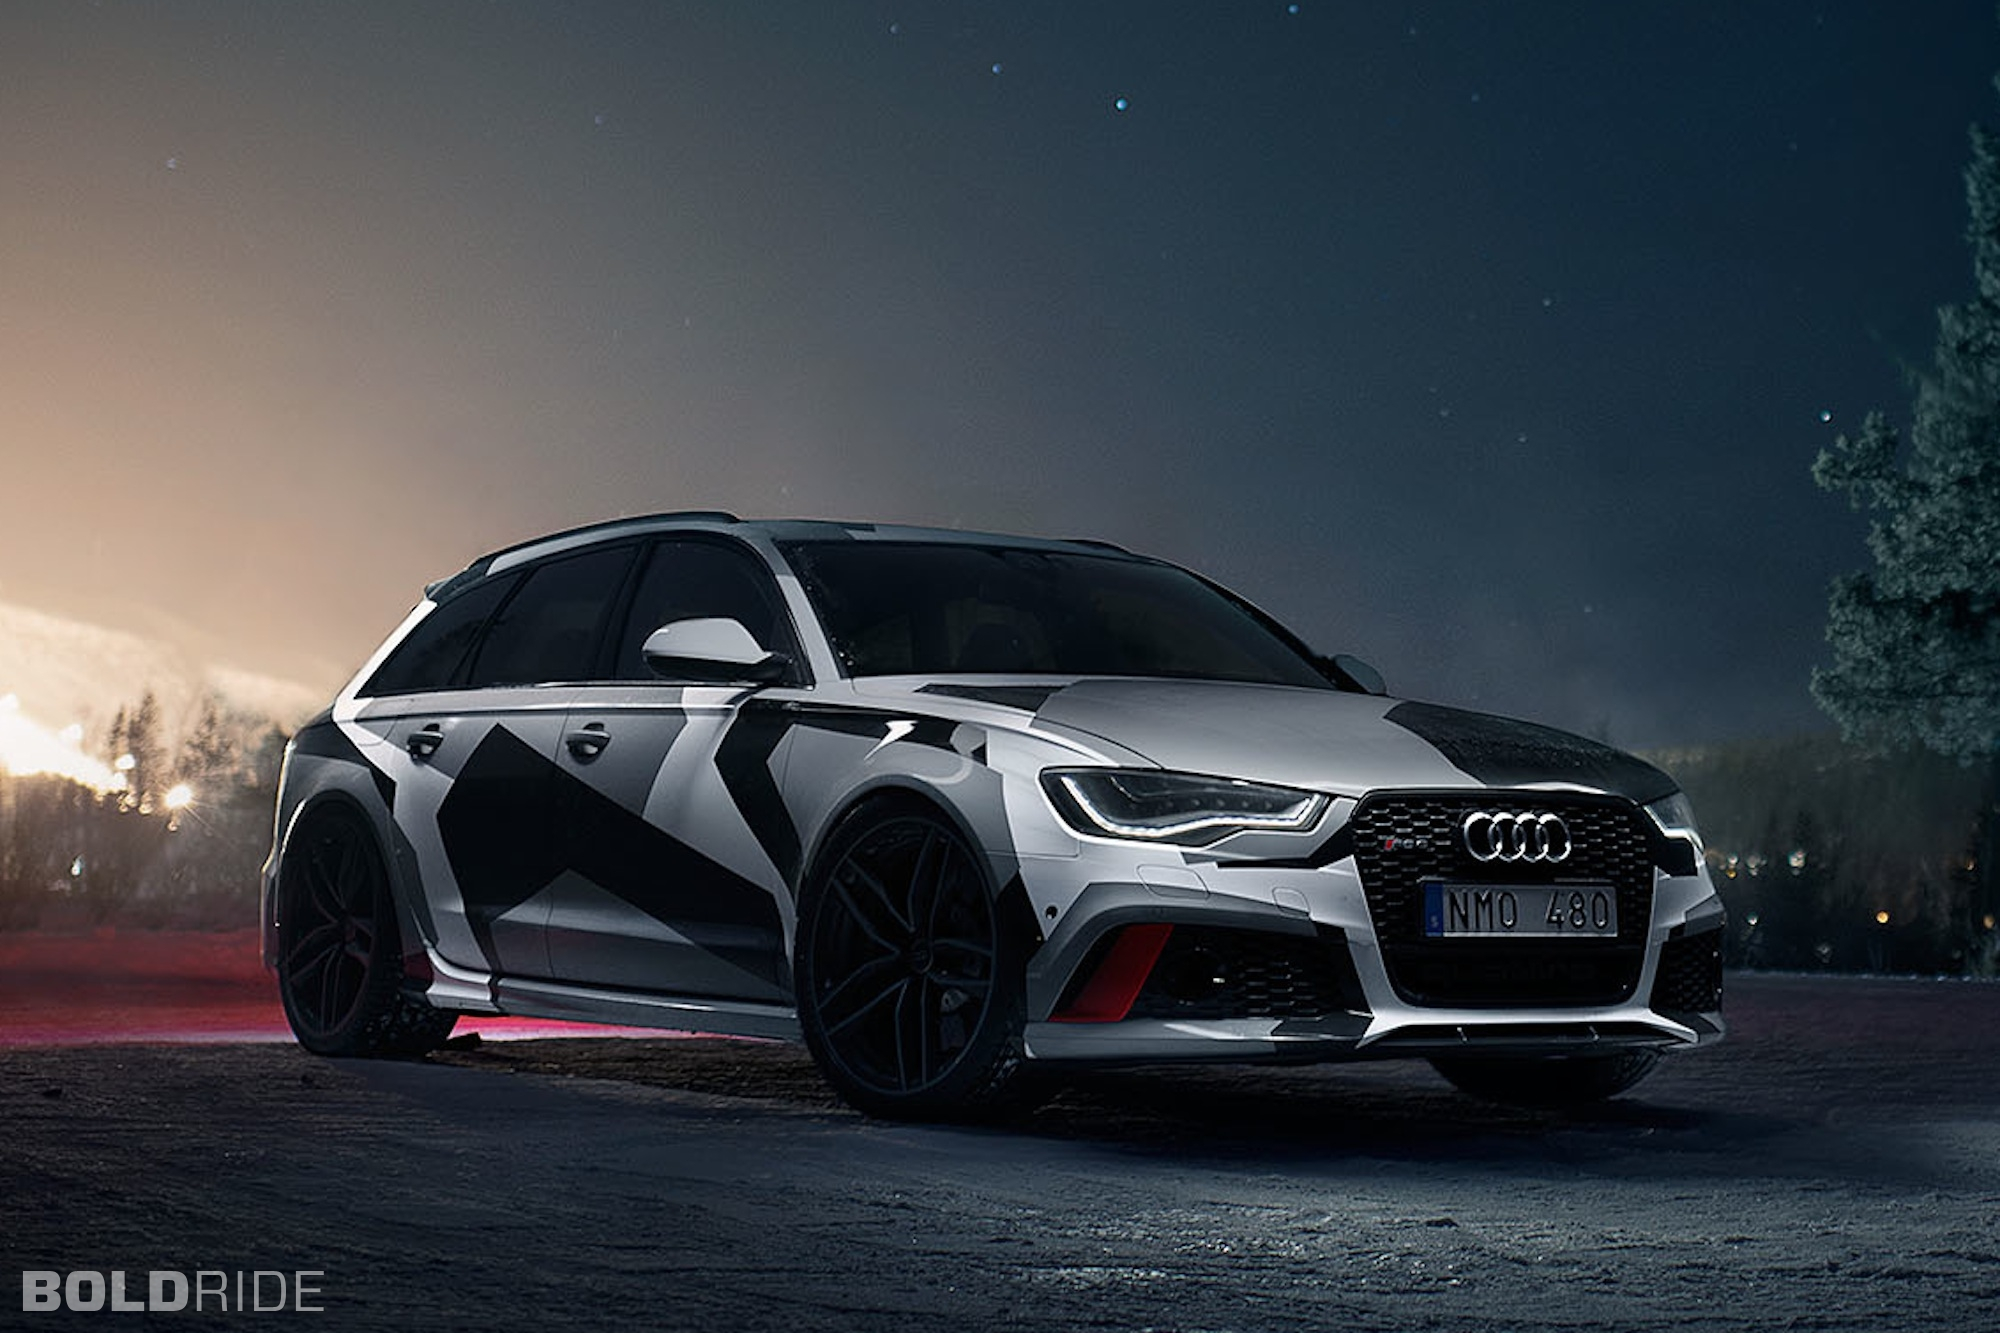 2000x1333 - Audi RS6 Wallpapers 11